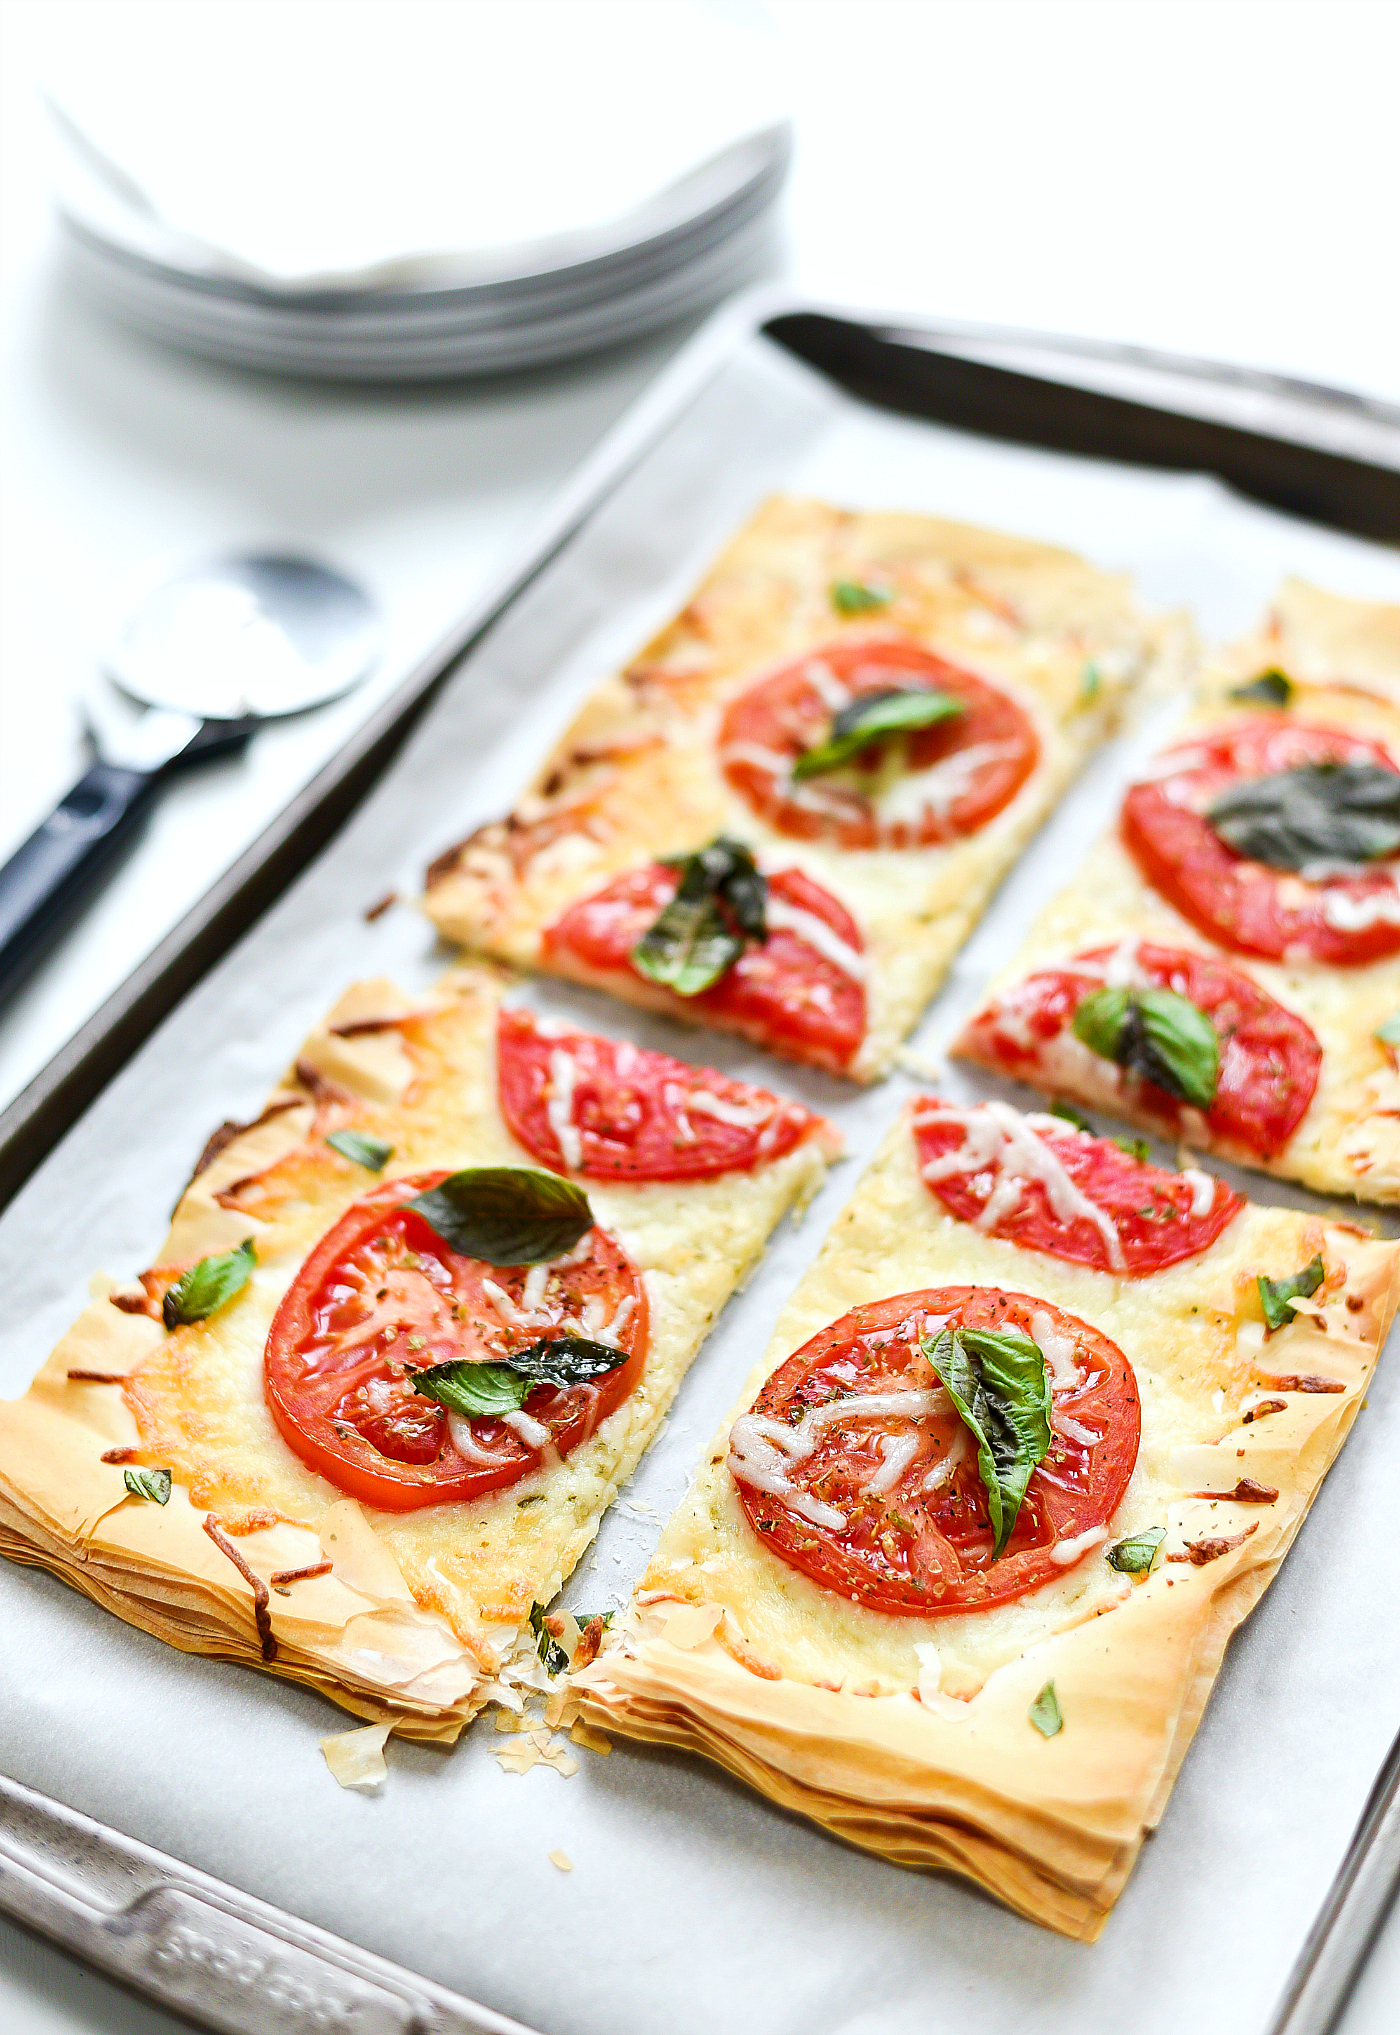 Weight Watchers Dinner Ideas - Phyllo Dough Pizza - Margherita Pizza